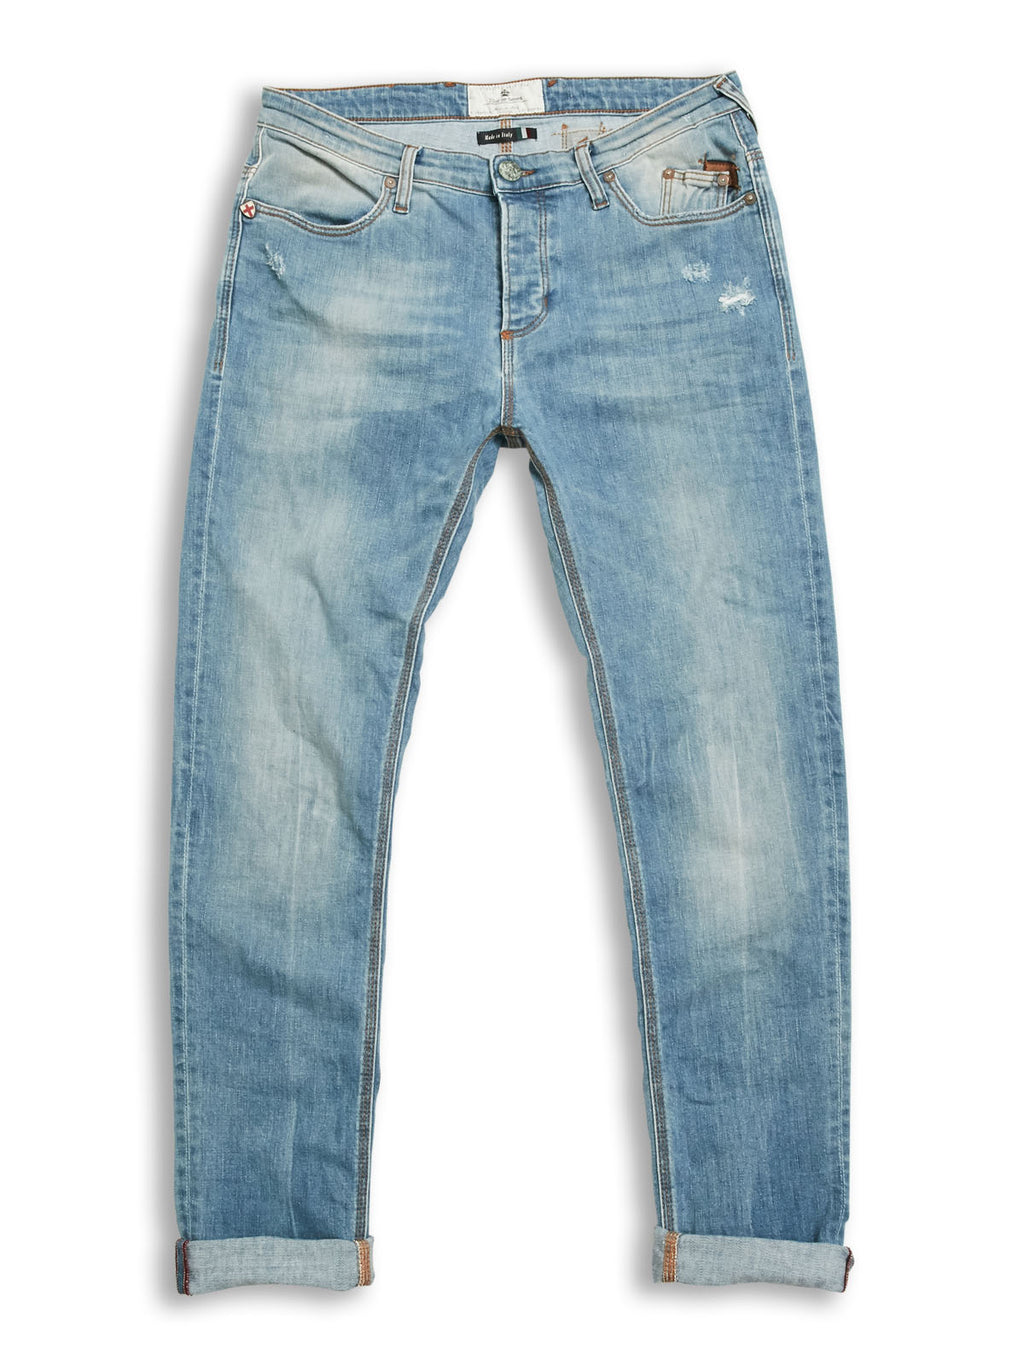 Repi Santos Super Light Jeans